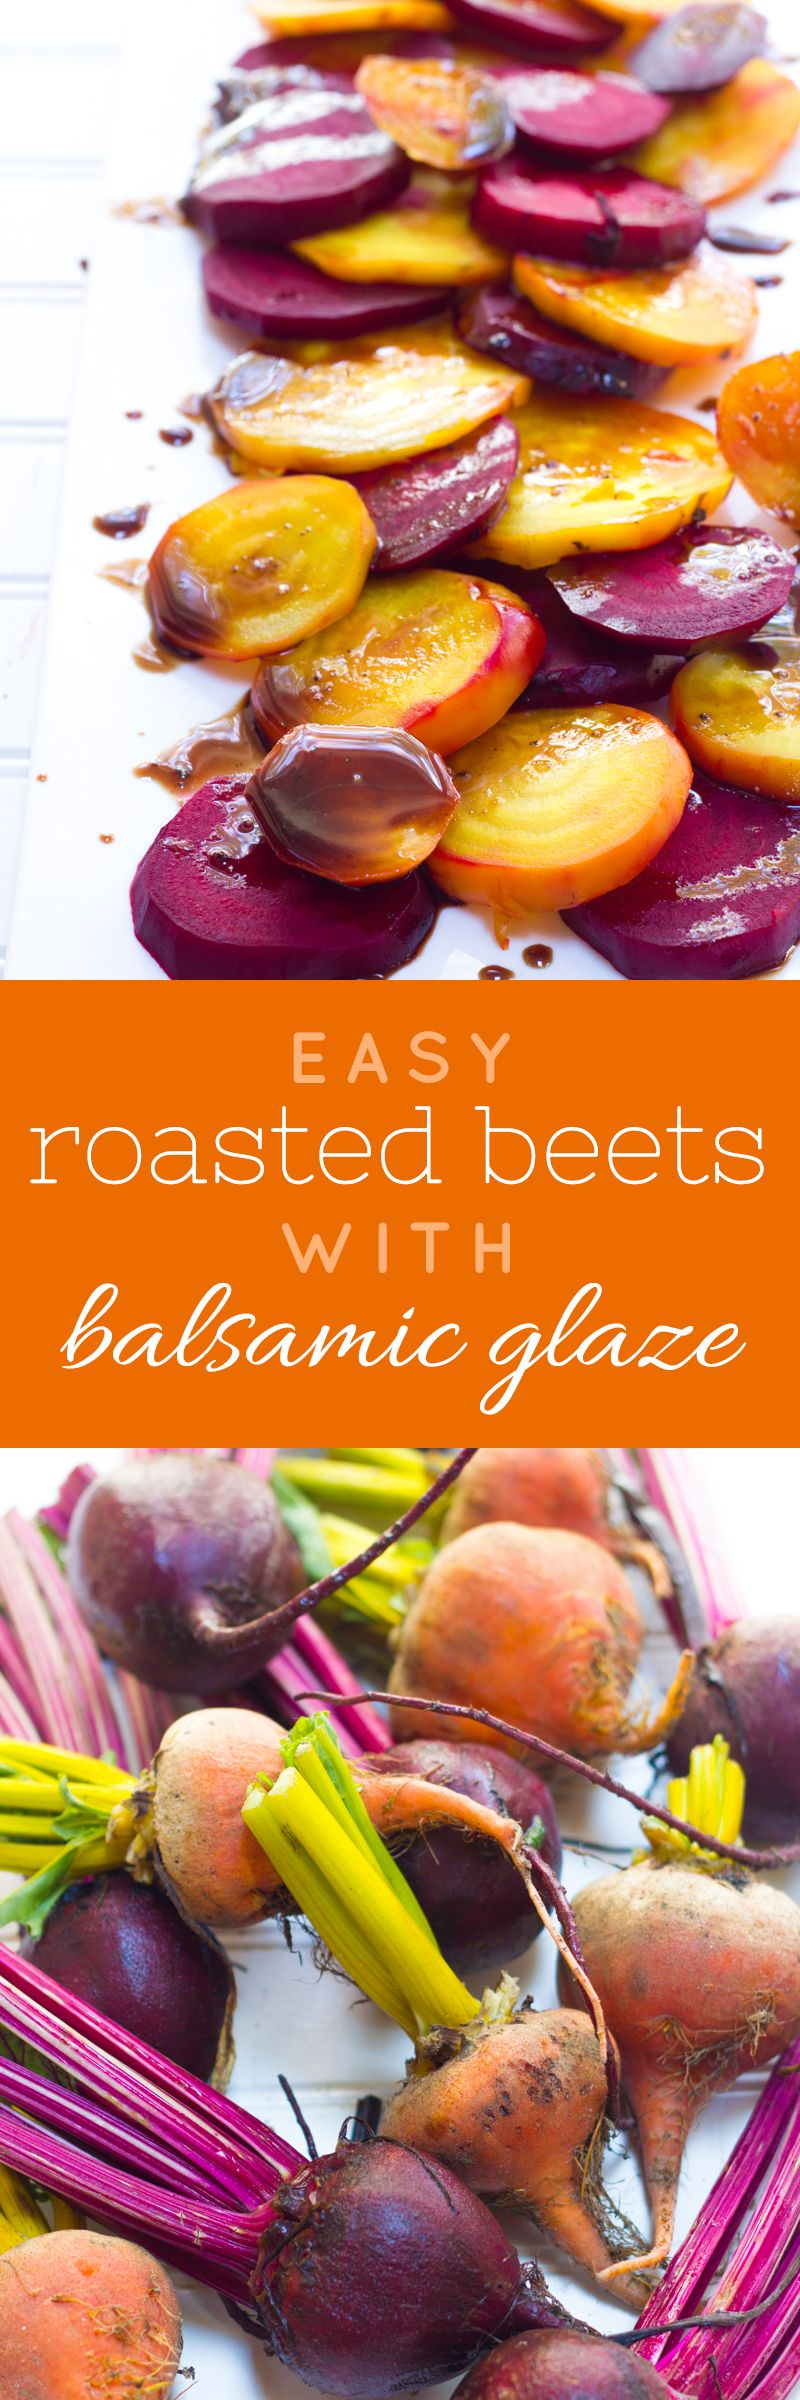 These bright and colorful roasted beets are a tasty and healthy side ...